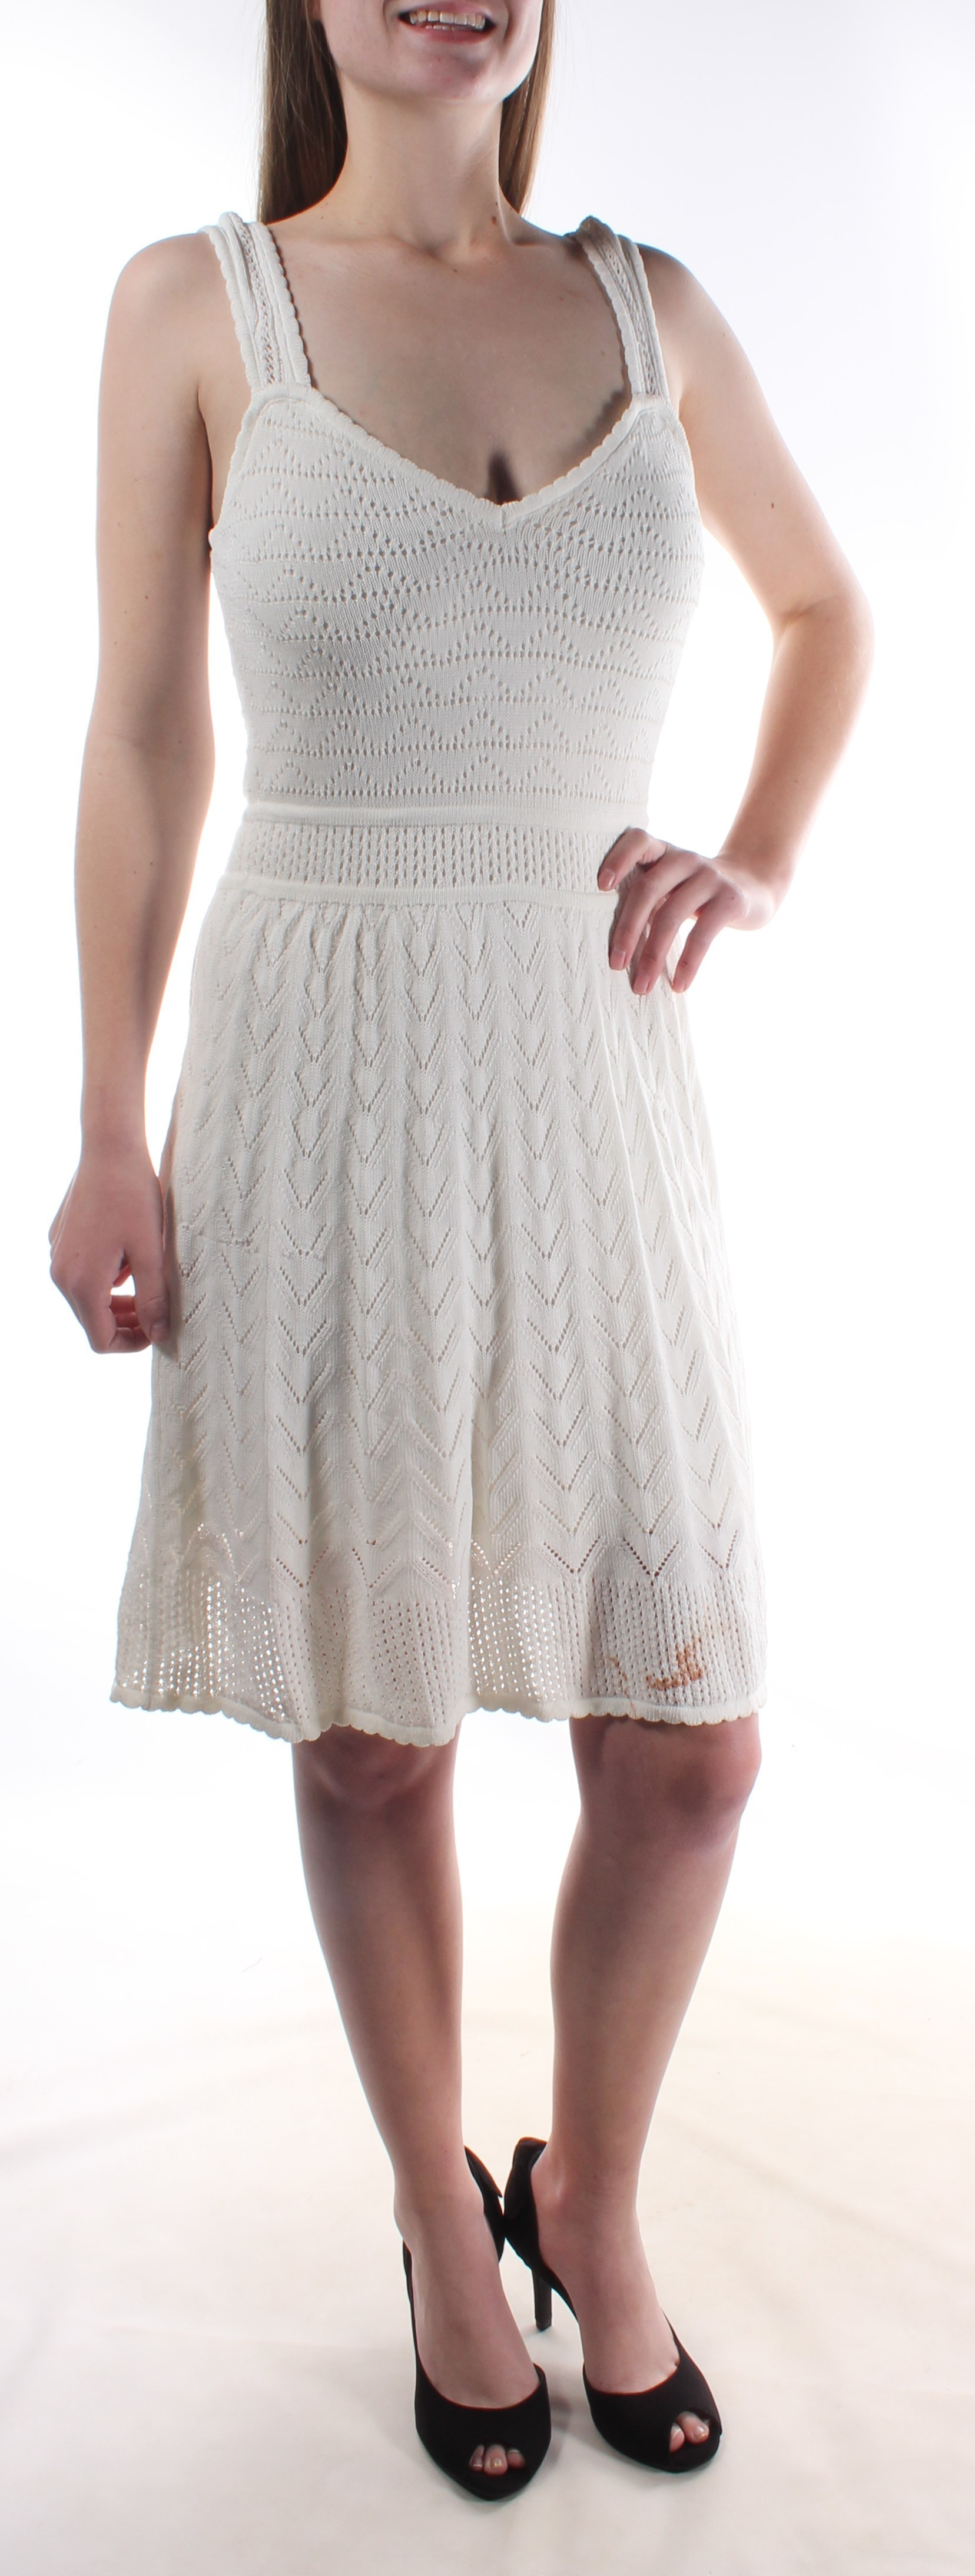 Inspirational $108 New Ivory Guess Crochet Overlay Fit Flare Dress M Ivory Crochet Dress Of Brilliant 41 Ideas Ivory Crochet Dress